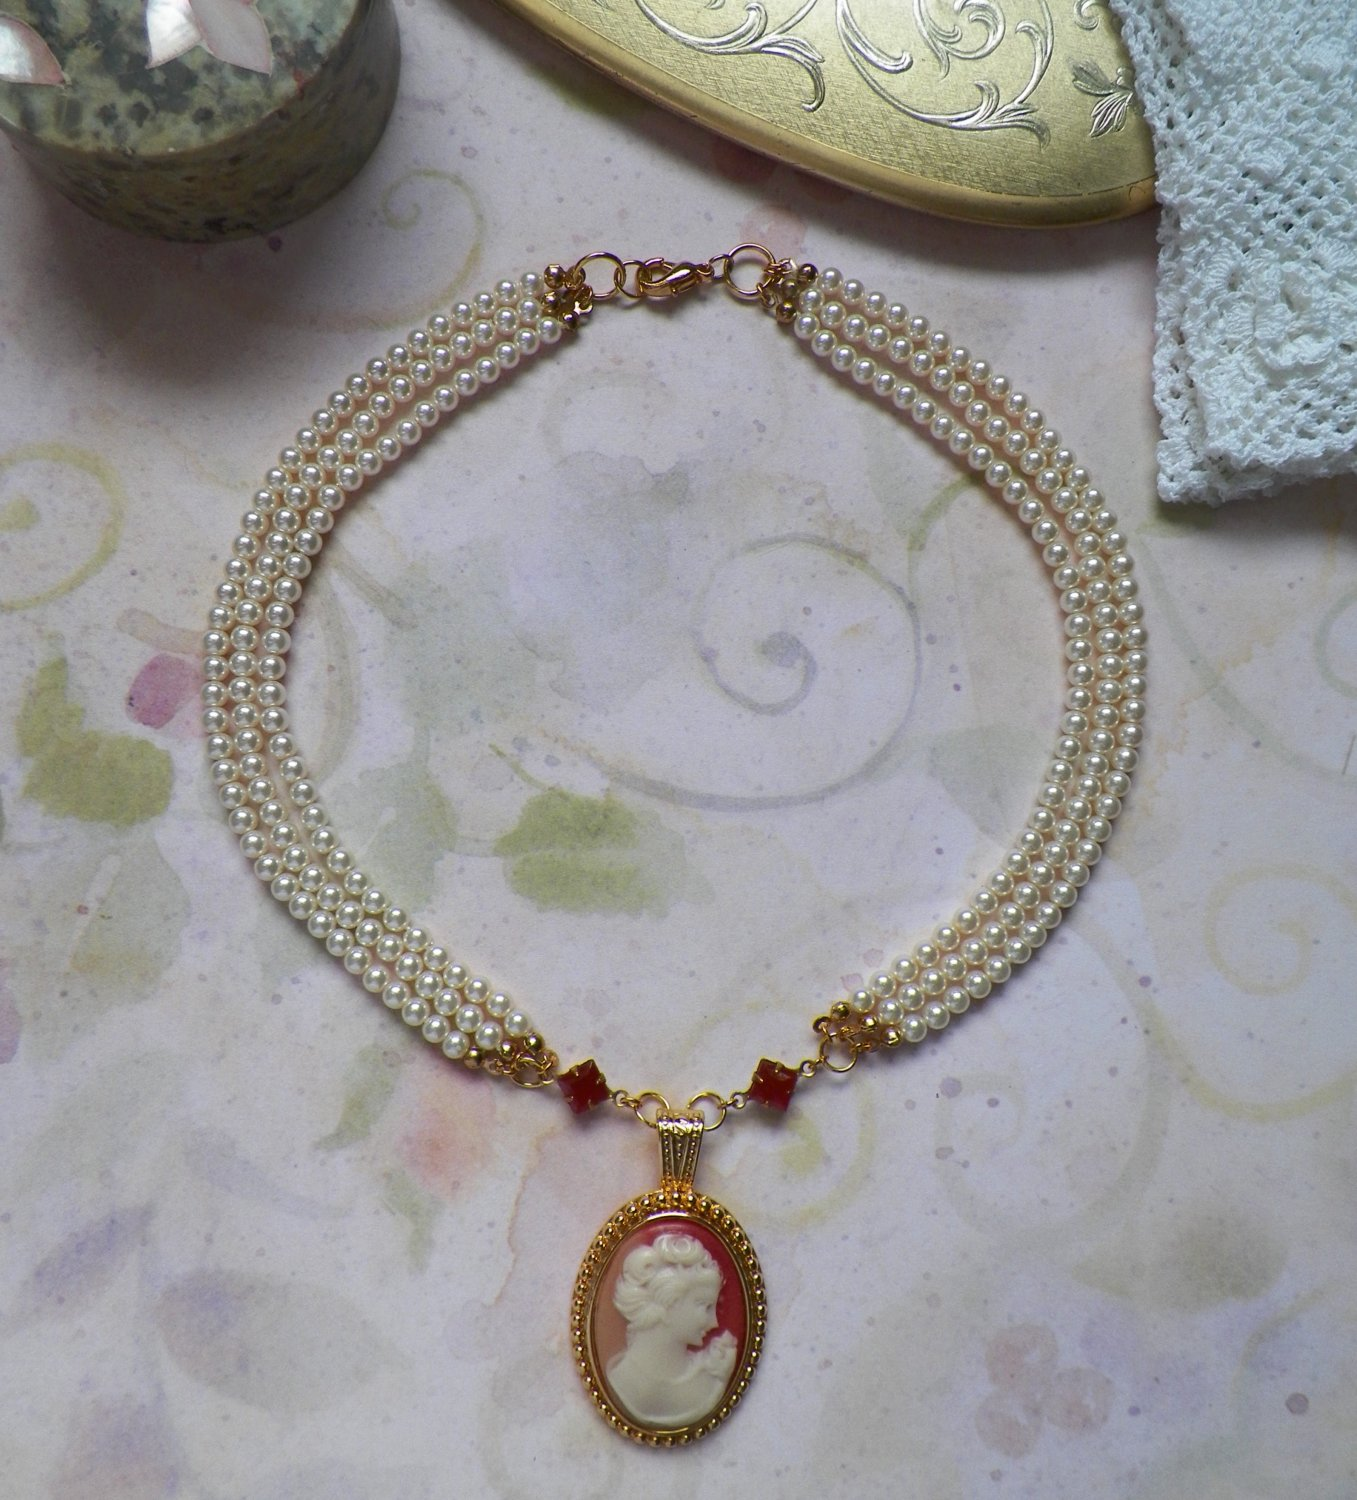 Cameo Pendant Necklace with Pearls